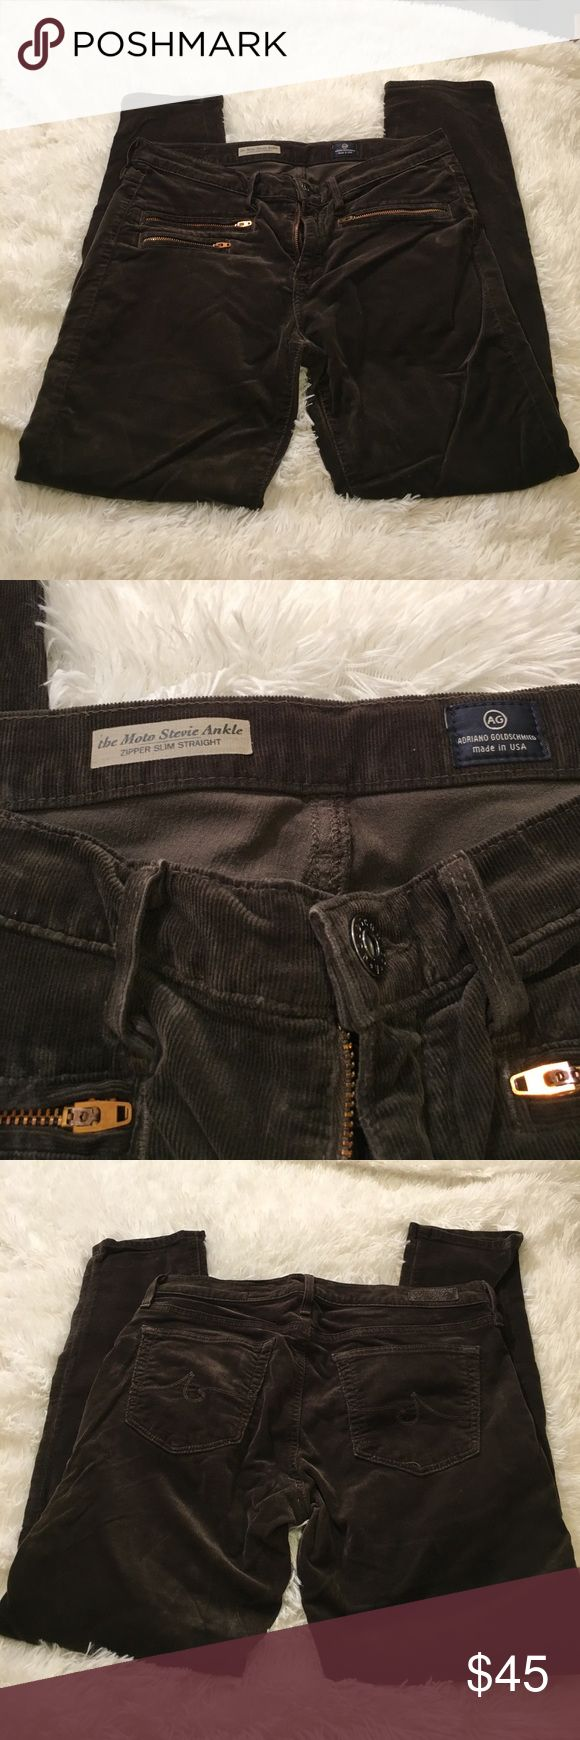 """👖Women's AG Jeans """"Stevie Ankle Moro Cords"""" 👖 Women's AG Jeans. """"Stevie Ankle Moto Corduroy"""", Zipper slim straight. Size 30R. Inseam 28 AG Adriano Goldschmied Jeans Straight Leg"""